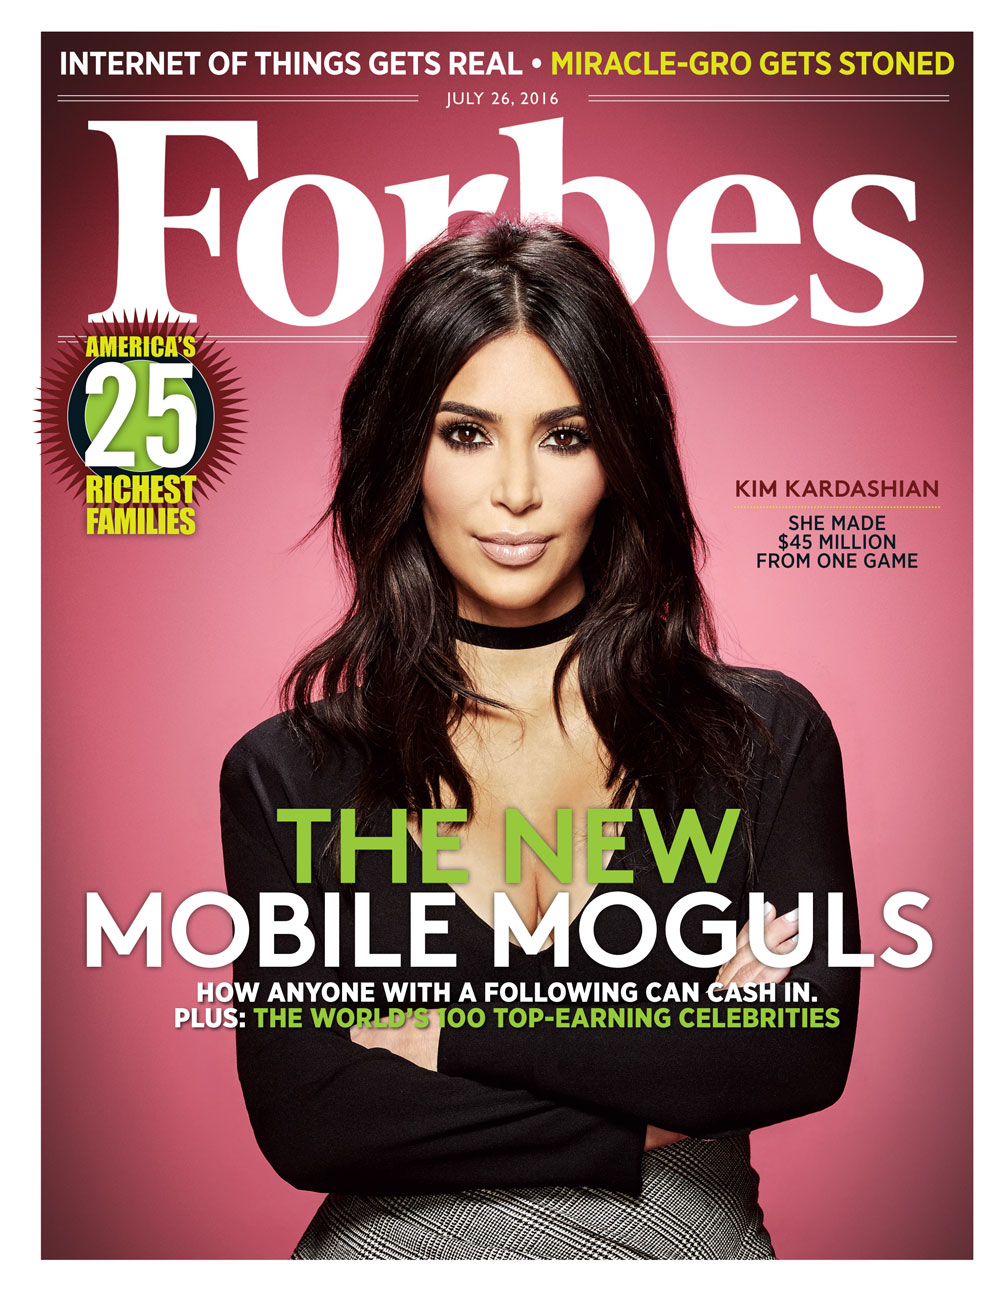 Kim Kardashian West appeared on the cover of Forbes in 2016 after making millions from her Kim Kardashian Hollywood game.